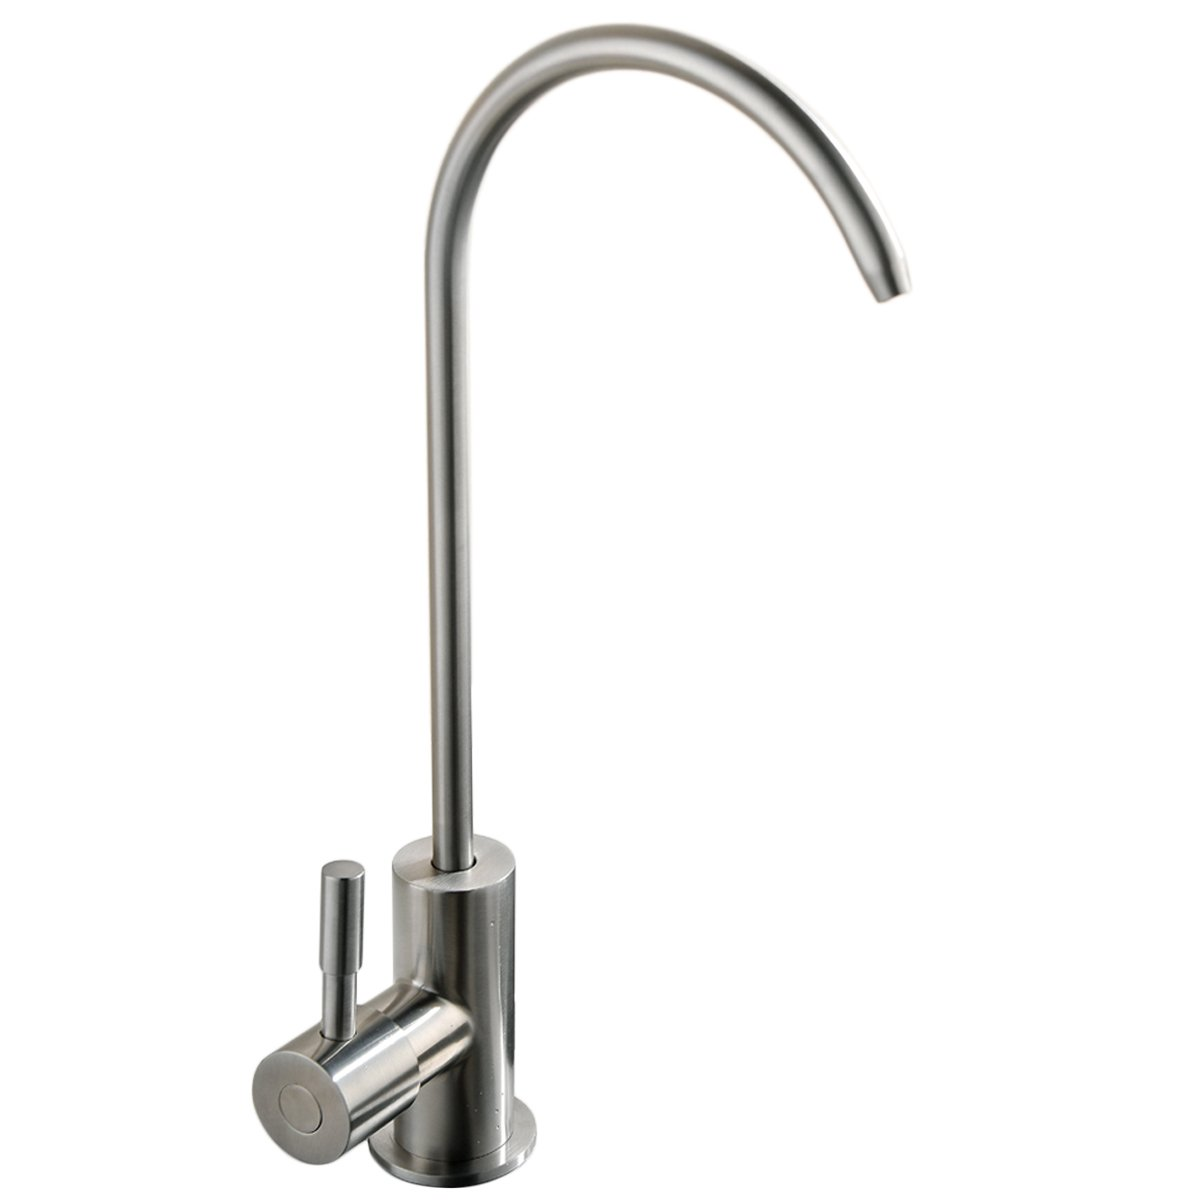 VCCUCINE Modern Antique Stainless Steel Single Handle Kitchen Sink Reverse Osmosis Filter Drinking Water Brushed Nickel Purifier Faucet, Beverage Water Filtration Faucet